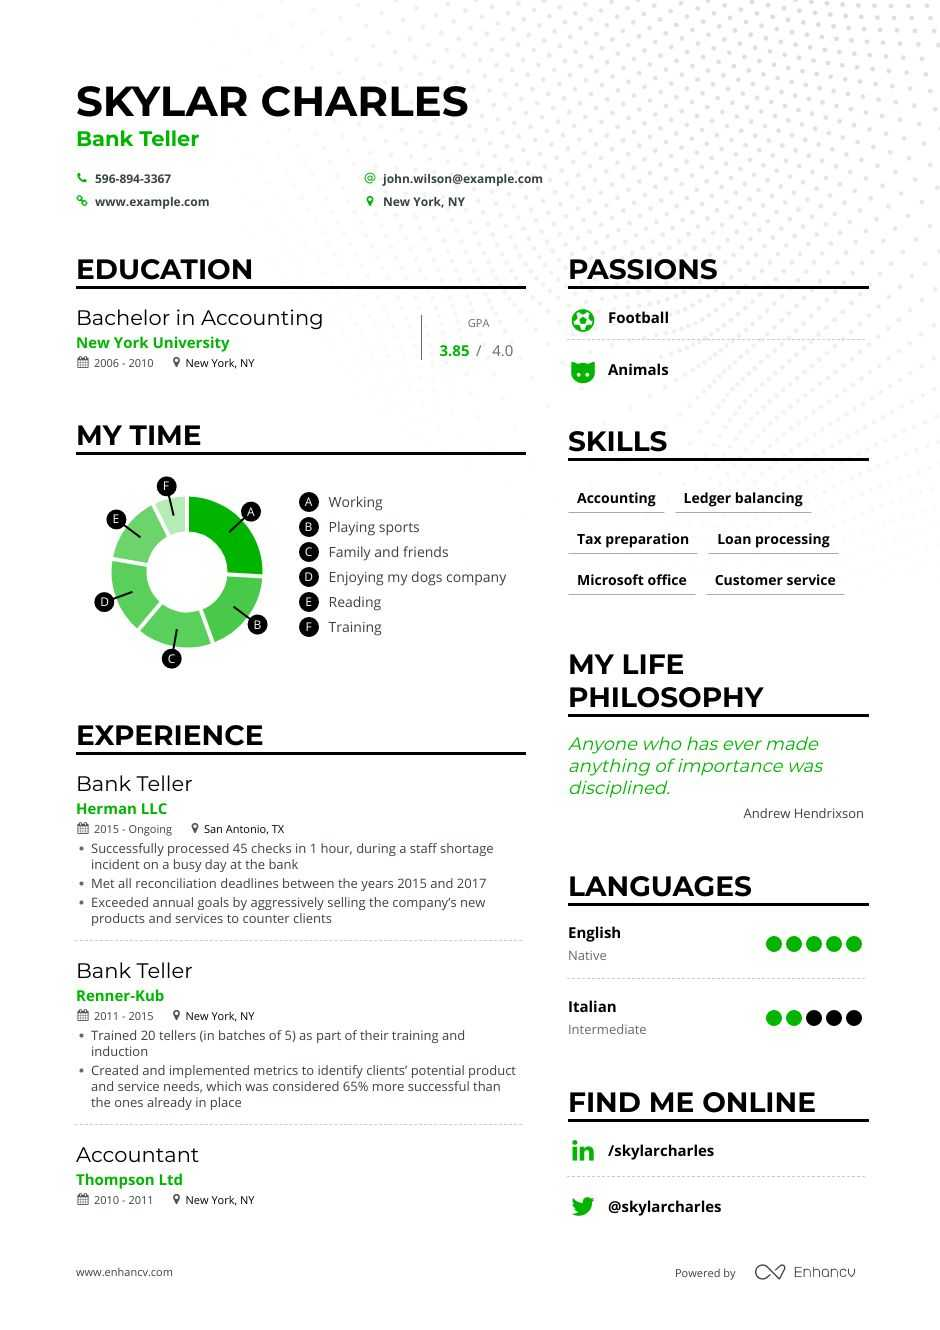 bank teller resume examples and skills you need to get hired